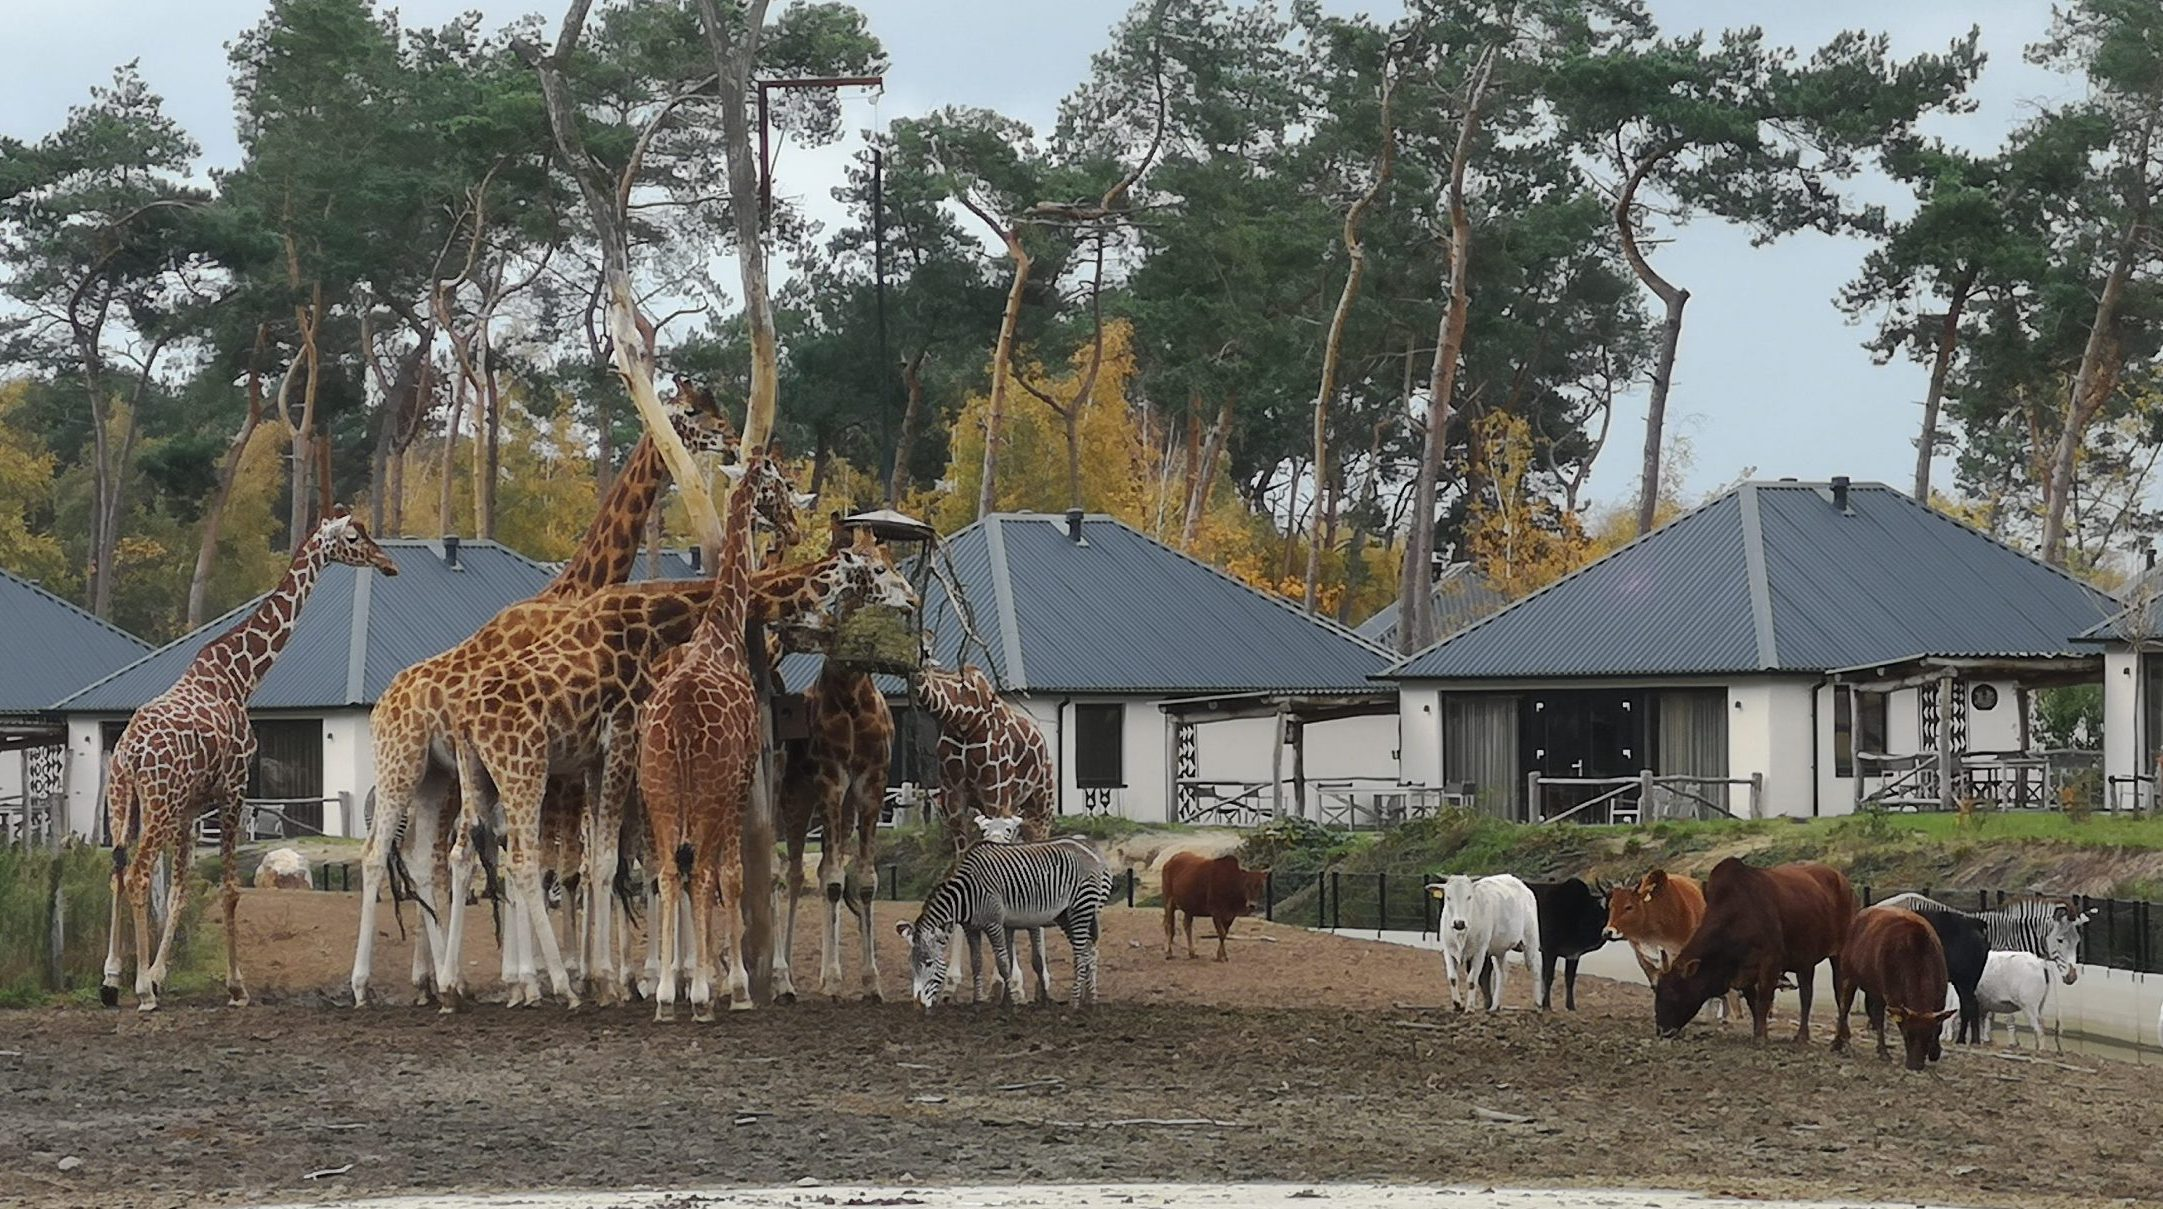 Review: Safari Resort Beekse Bergen